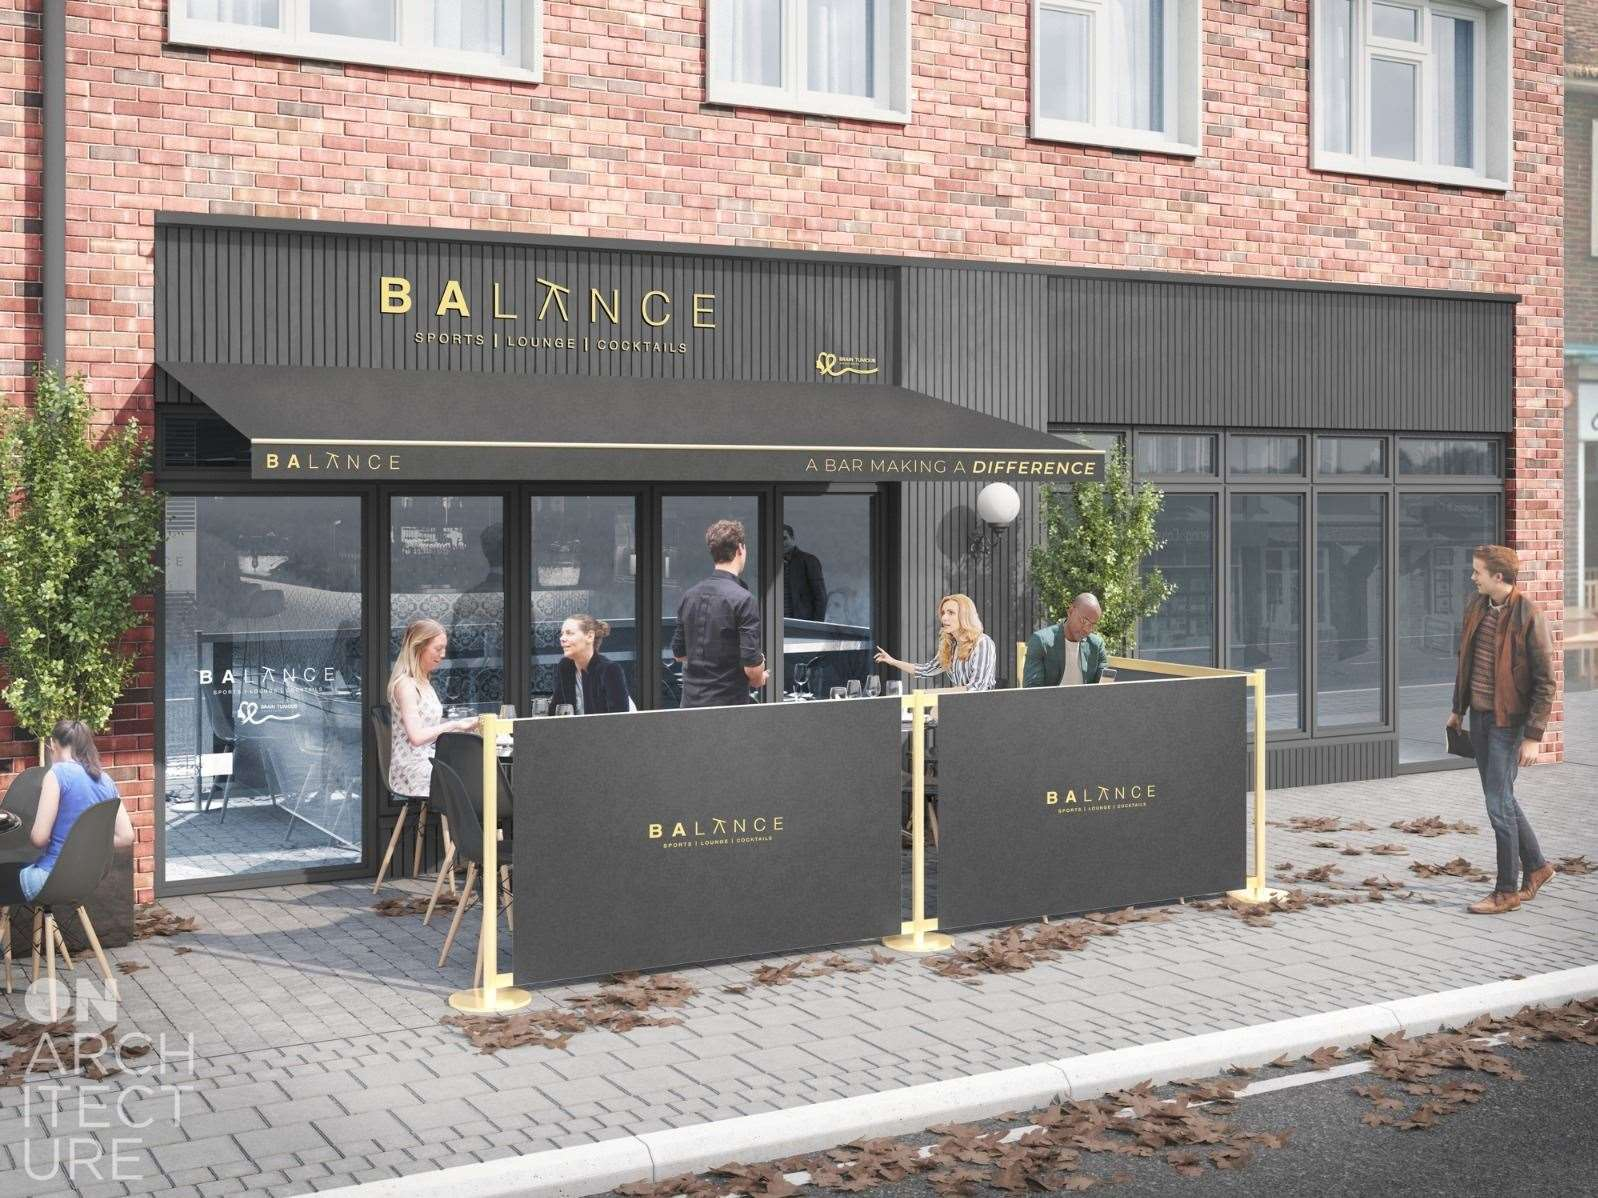 Balance Bar will open in New Romney High Street